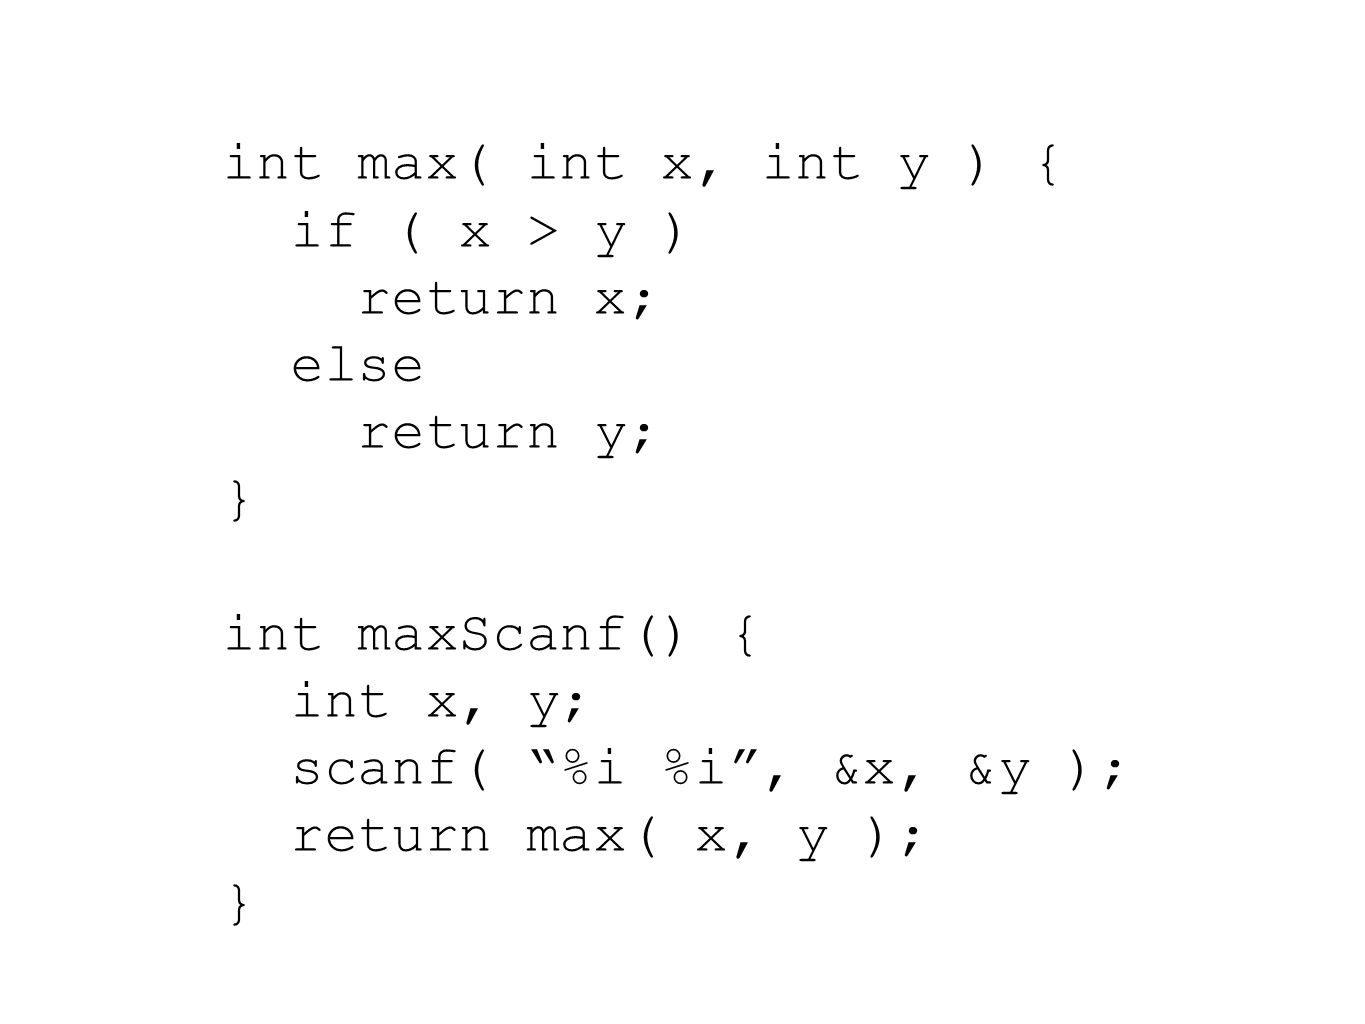 int max( int x, int y ) { if ( x > y ) return x; else return y; } int maxScanf() { int x, y; scanf( %i %i , &x, &y ); return max( x, y ); }